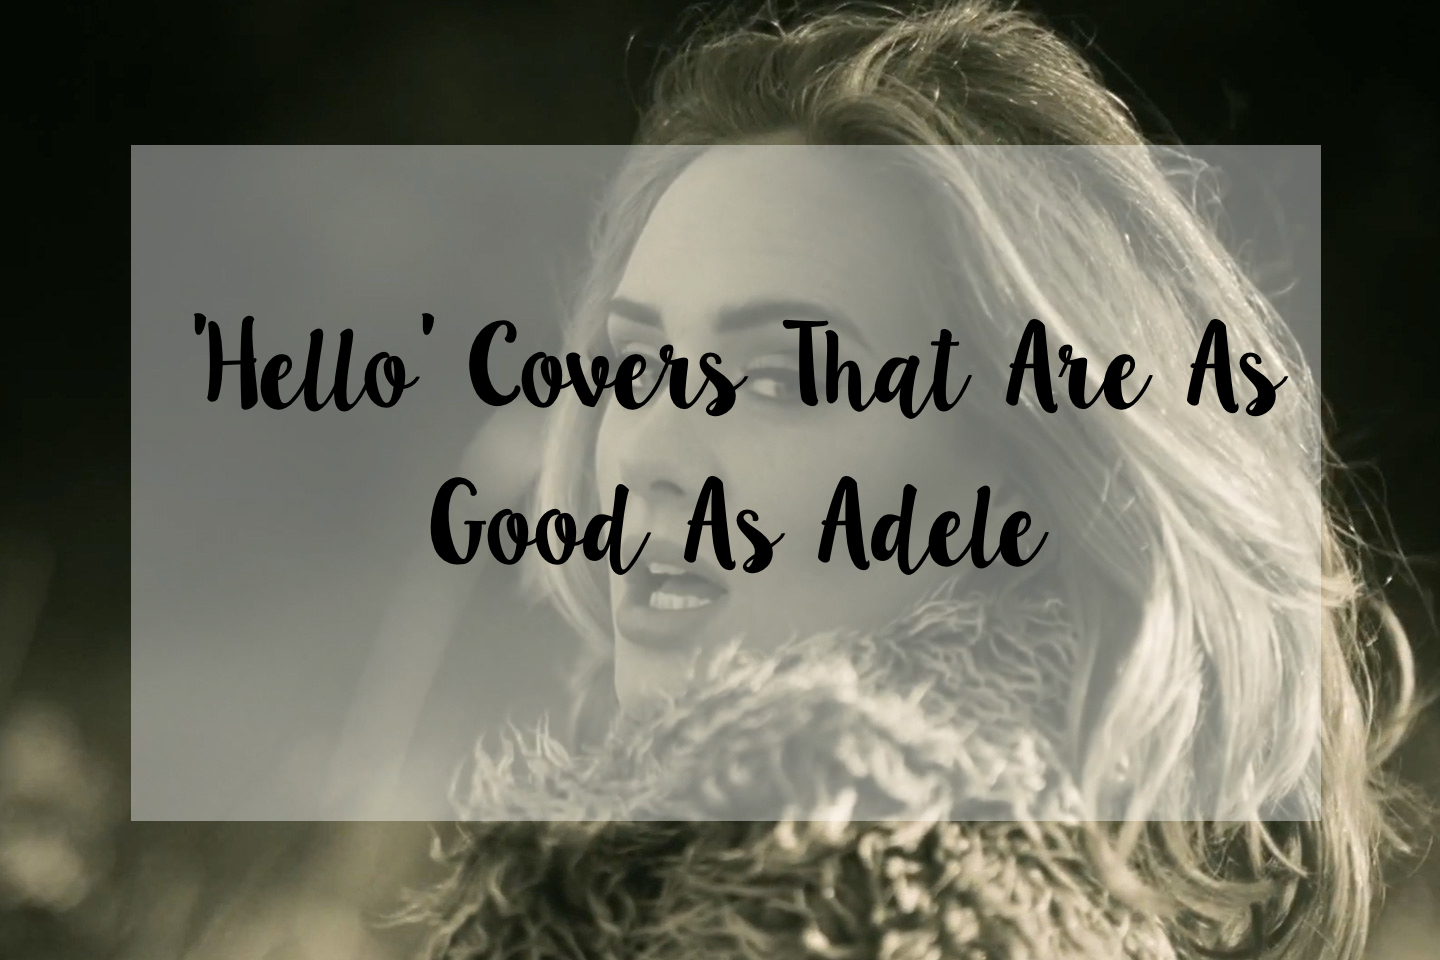 'Hello' Covers That Are As Good As Adele